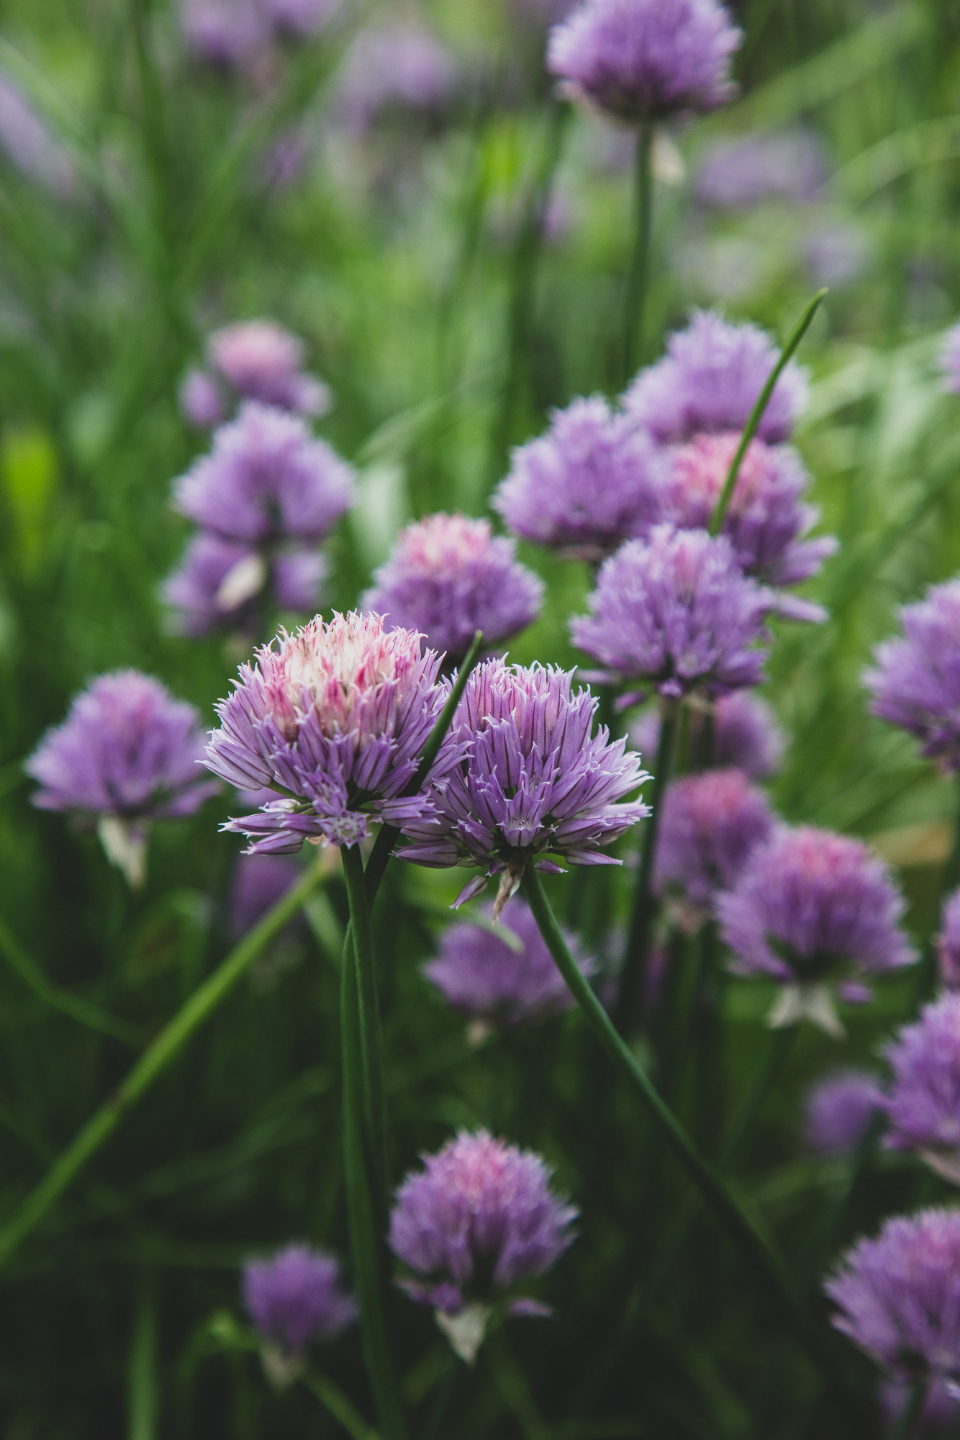 chives blossom garden nature wild purple bloom plants botanical ingrediant close up